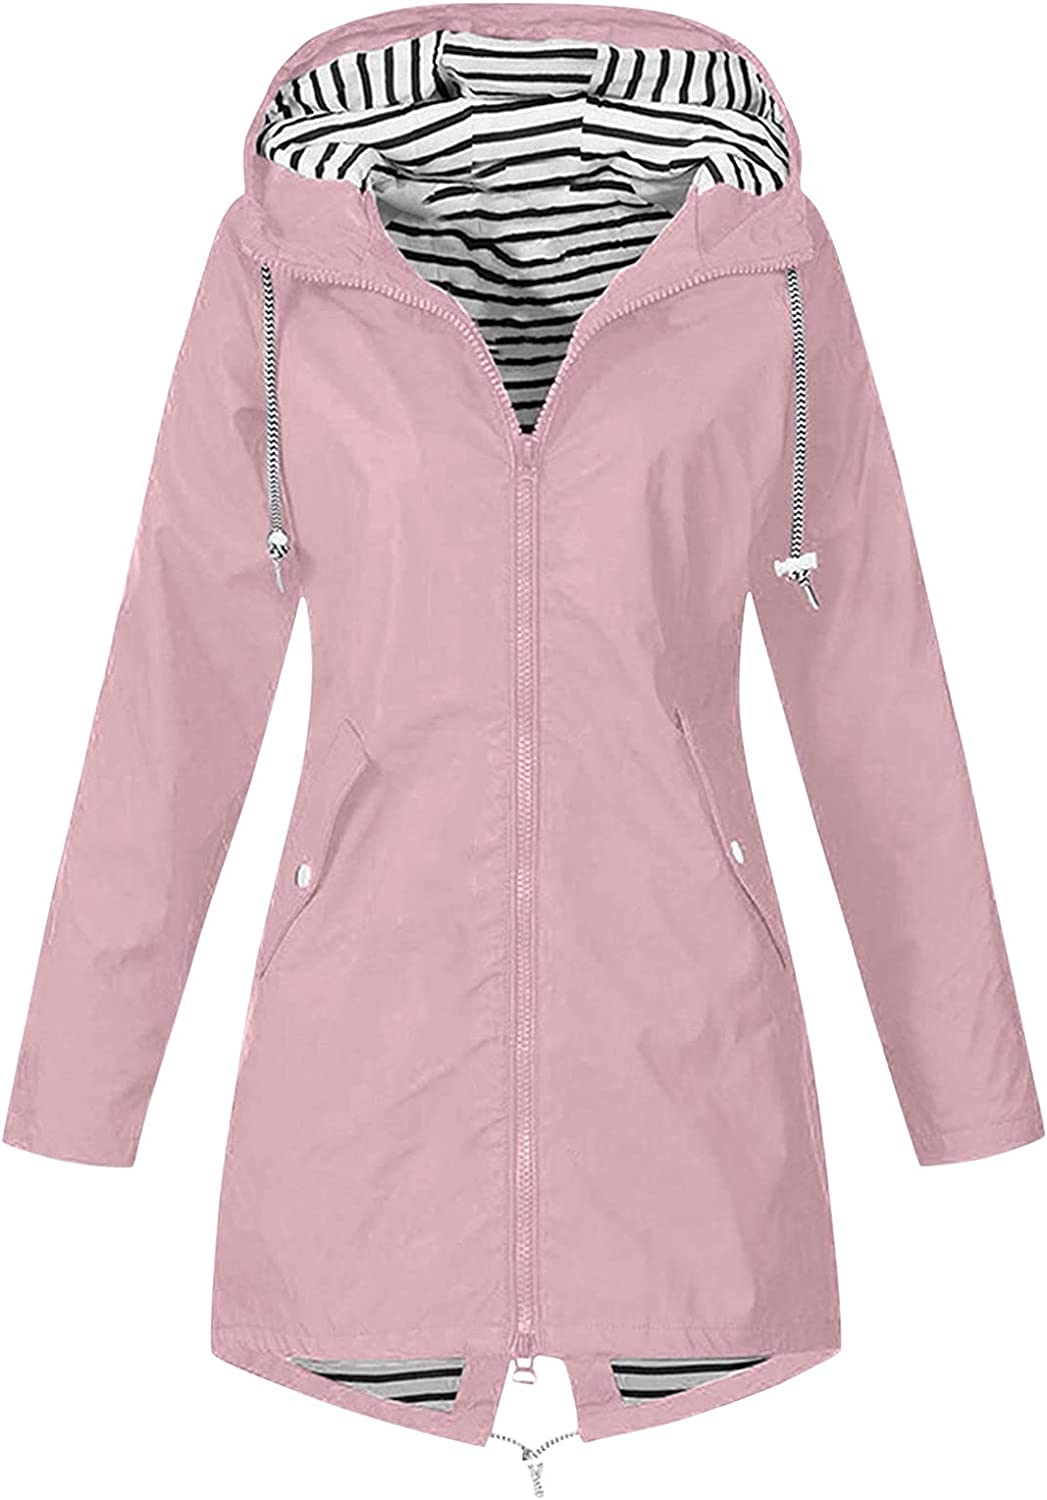 Kcocoo Jackets for Women, Windproof Raincoat Outdoor with Hooded Windbreaker Coats Active Lightweight Long Breathable Jackets